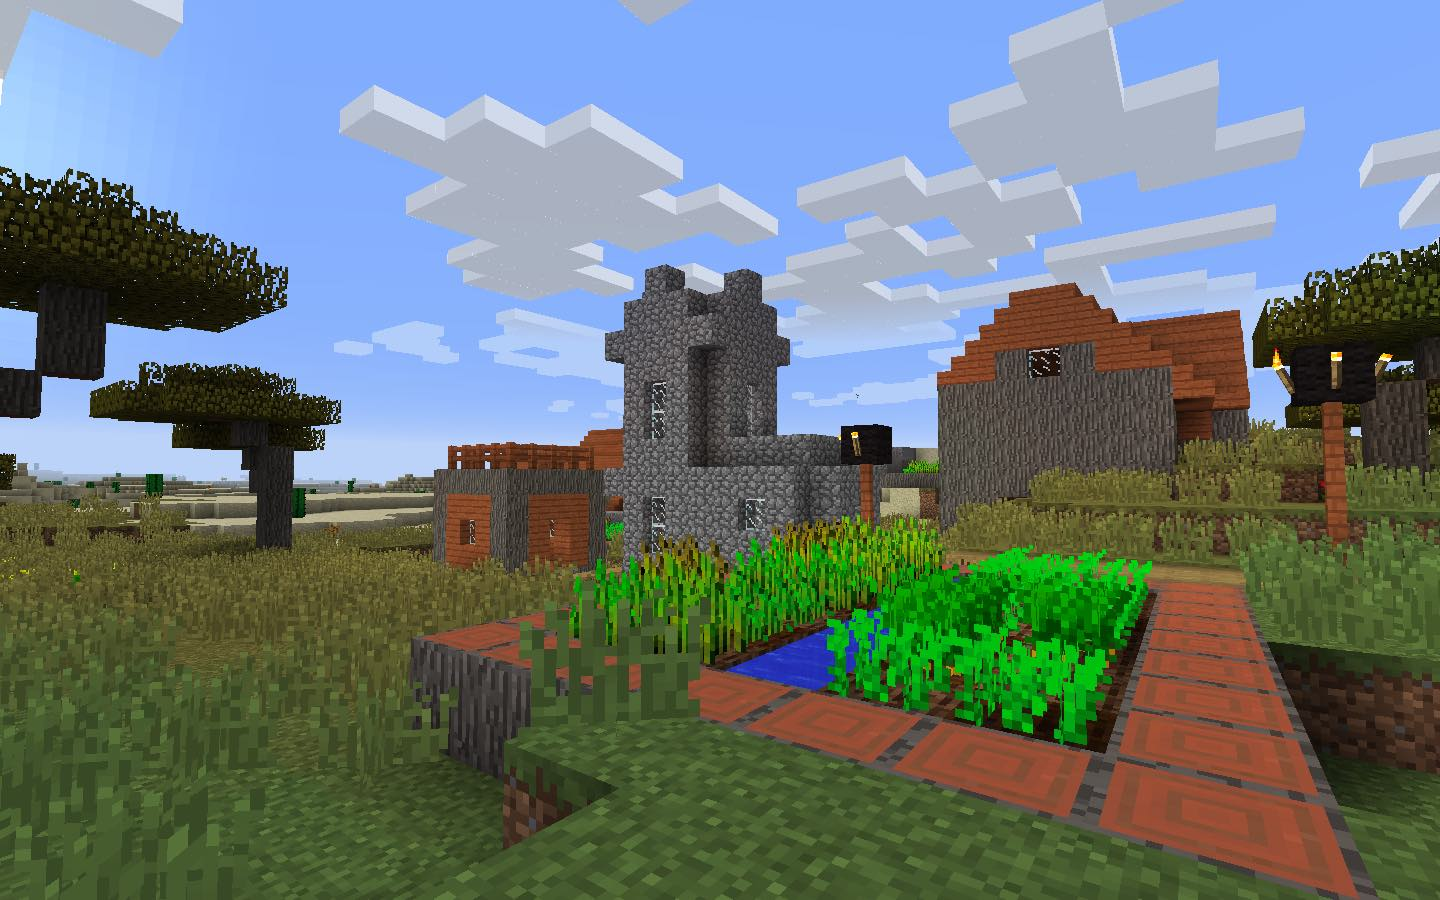 The savanna village in this Minecraft Seed